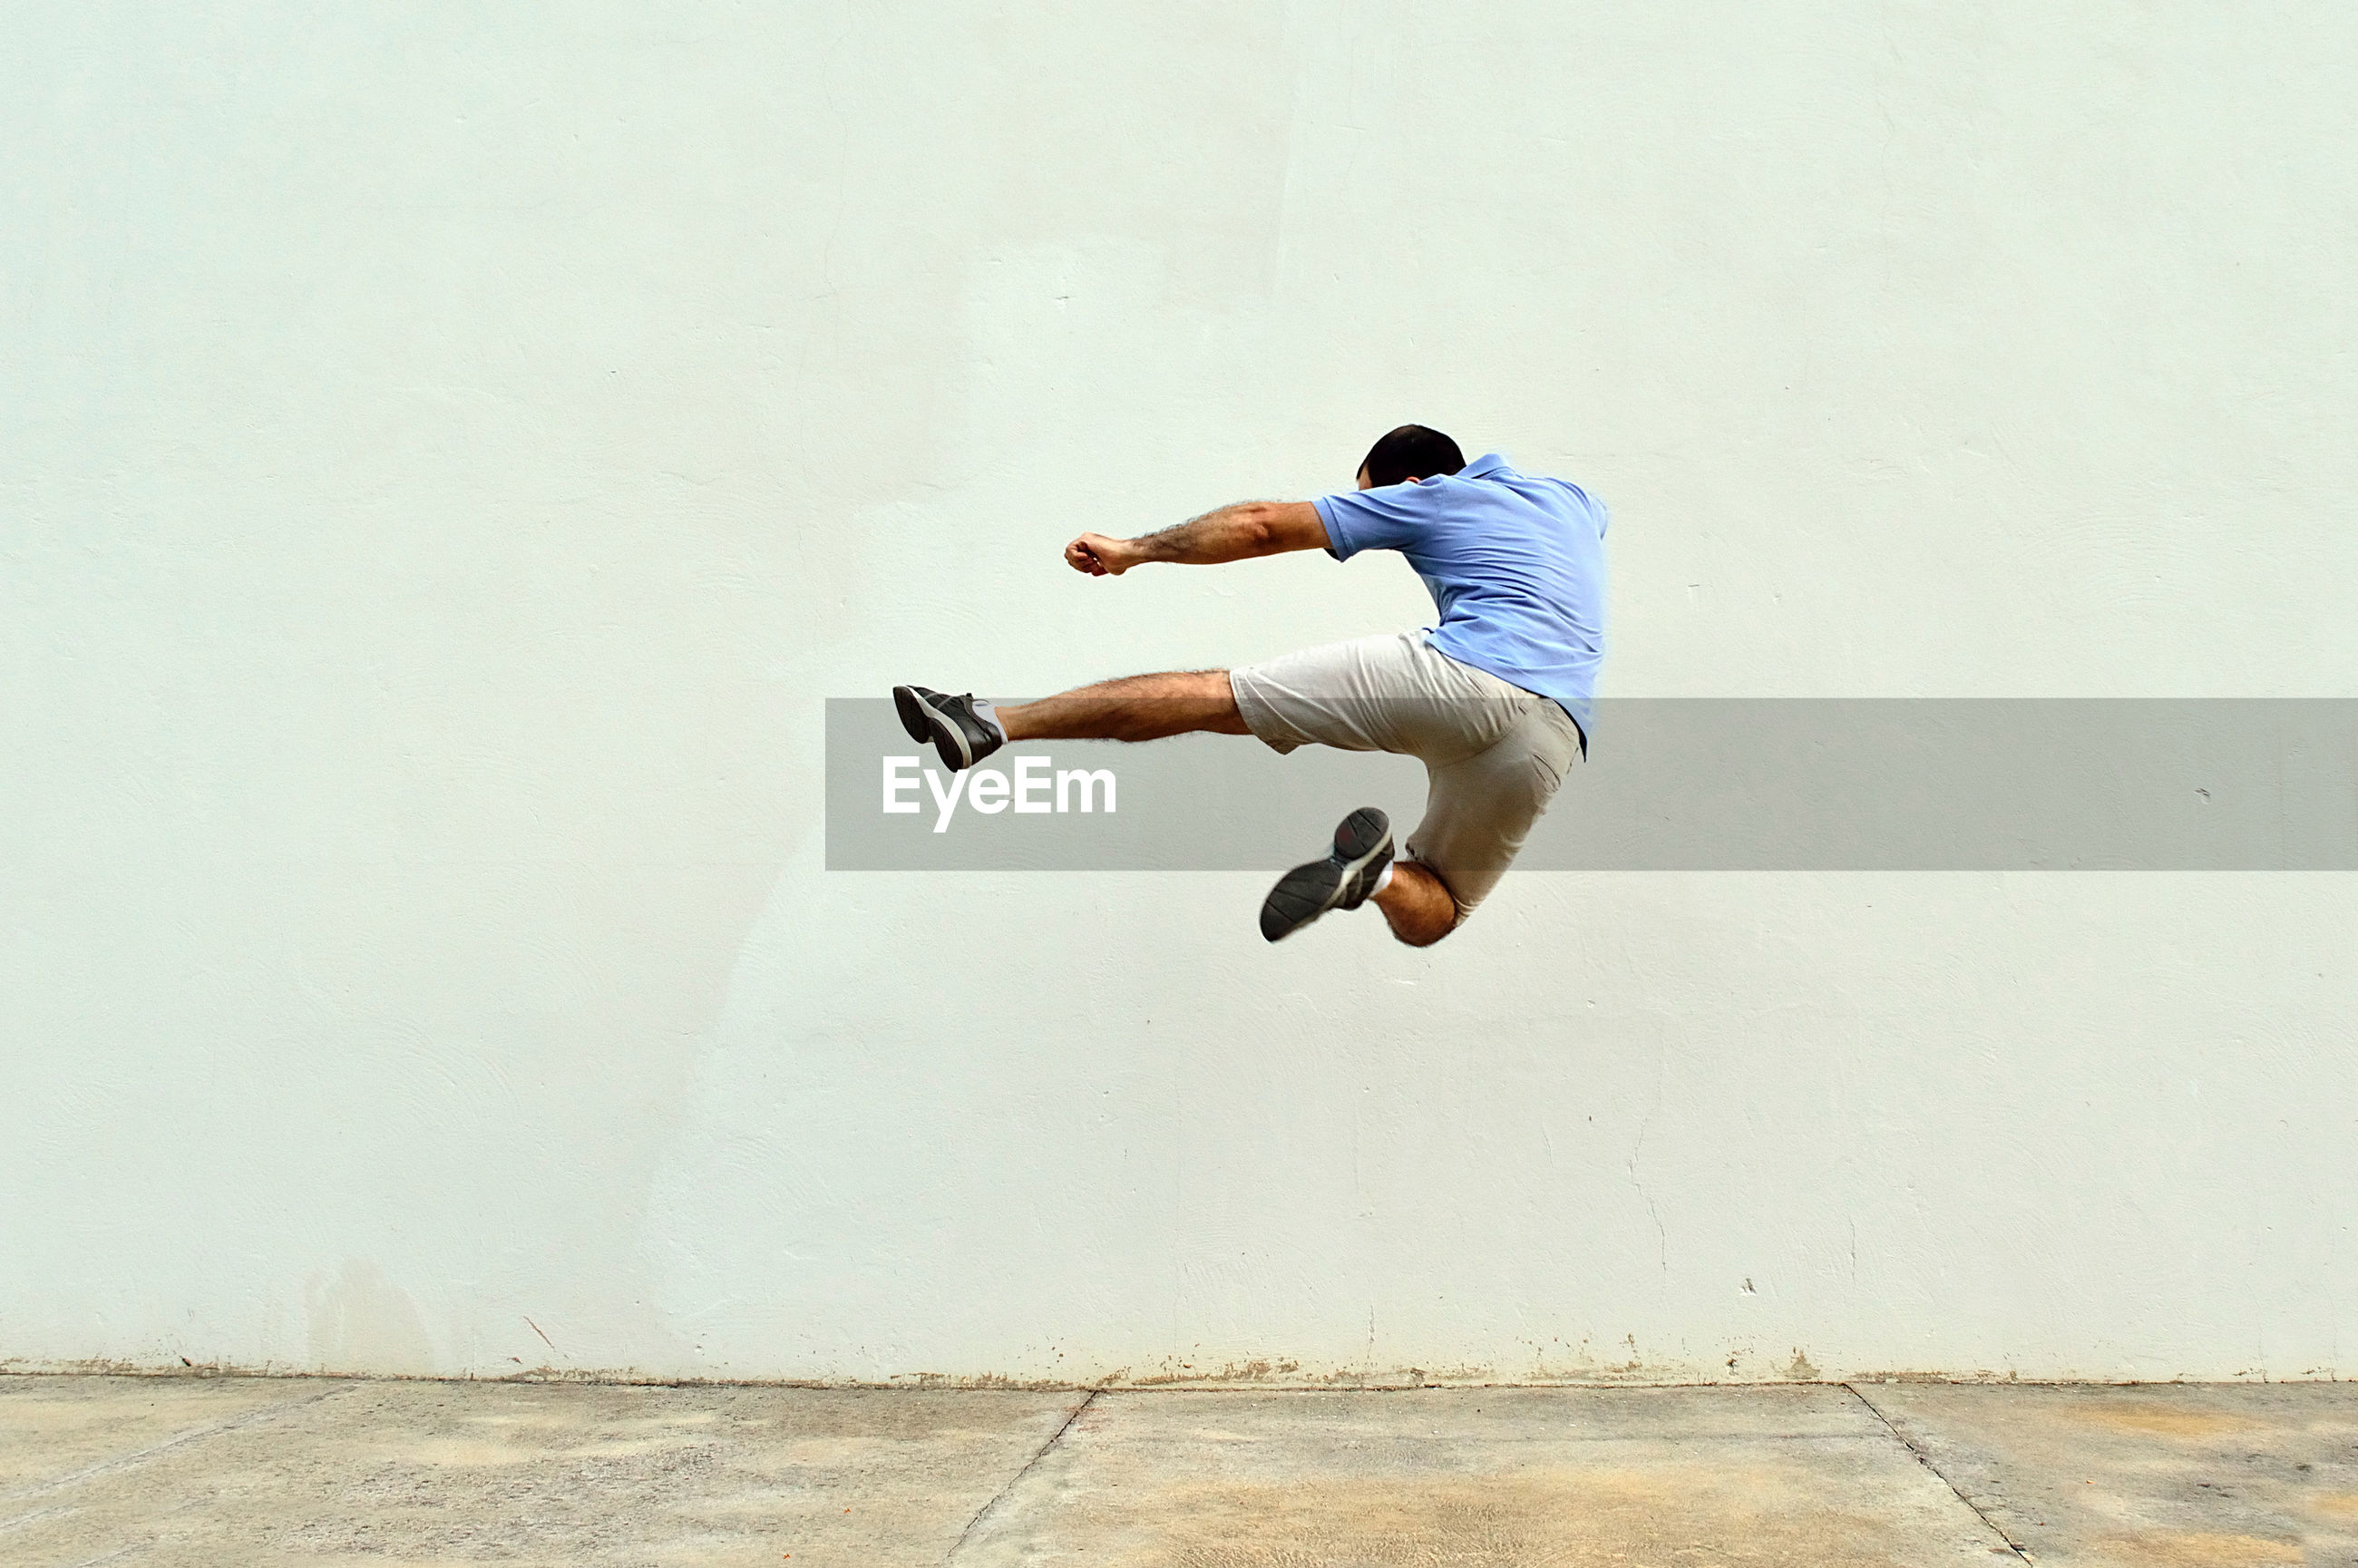 Man doing a flying kick